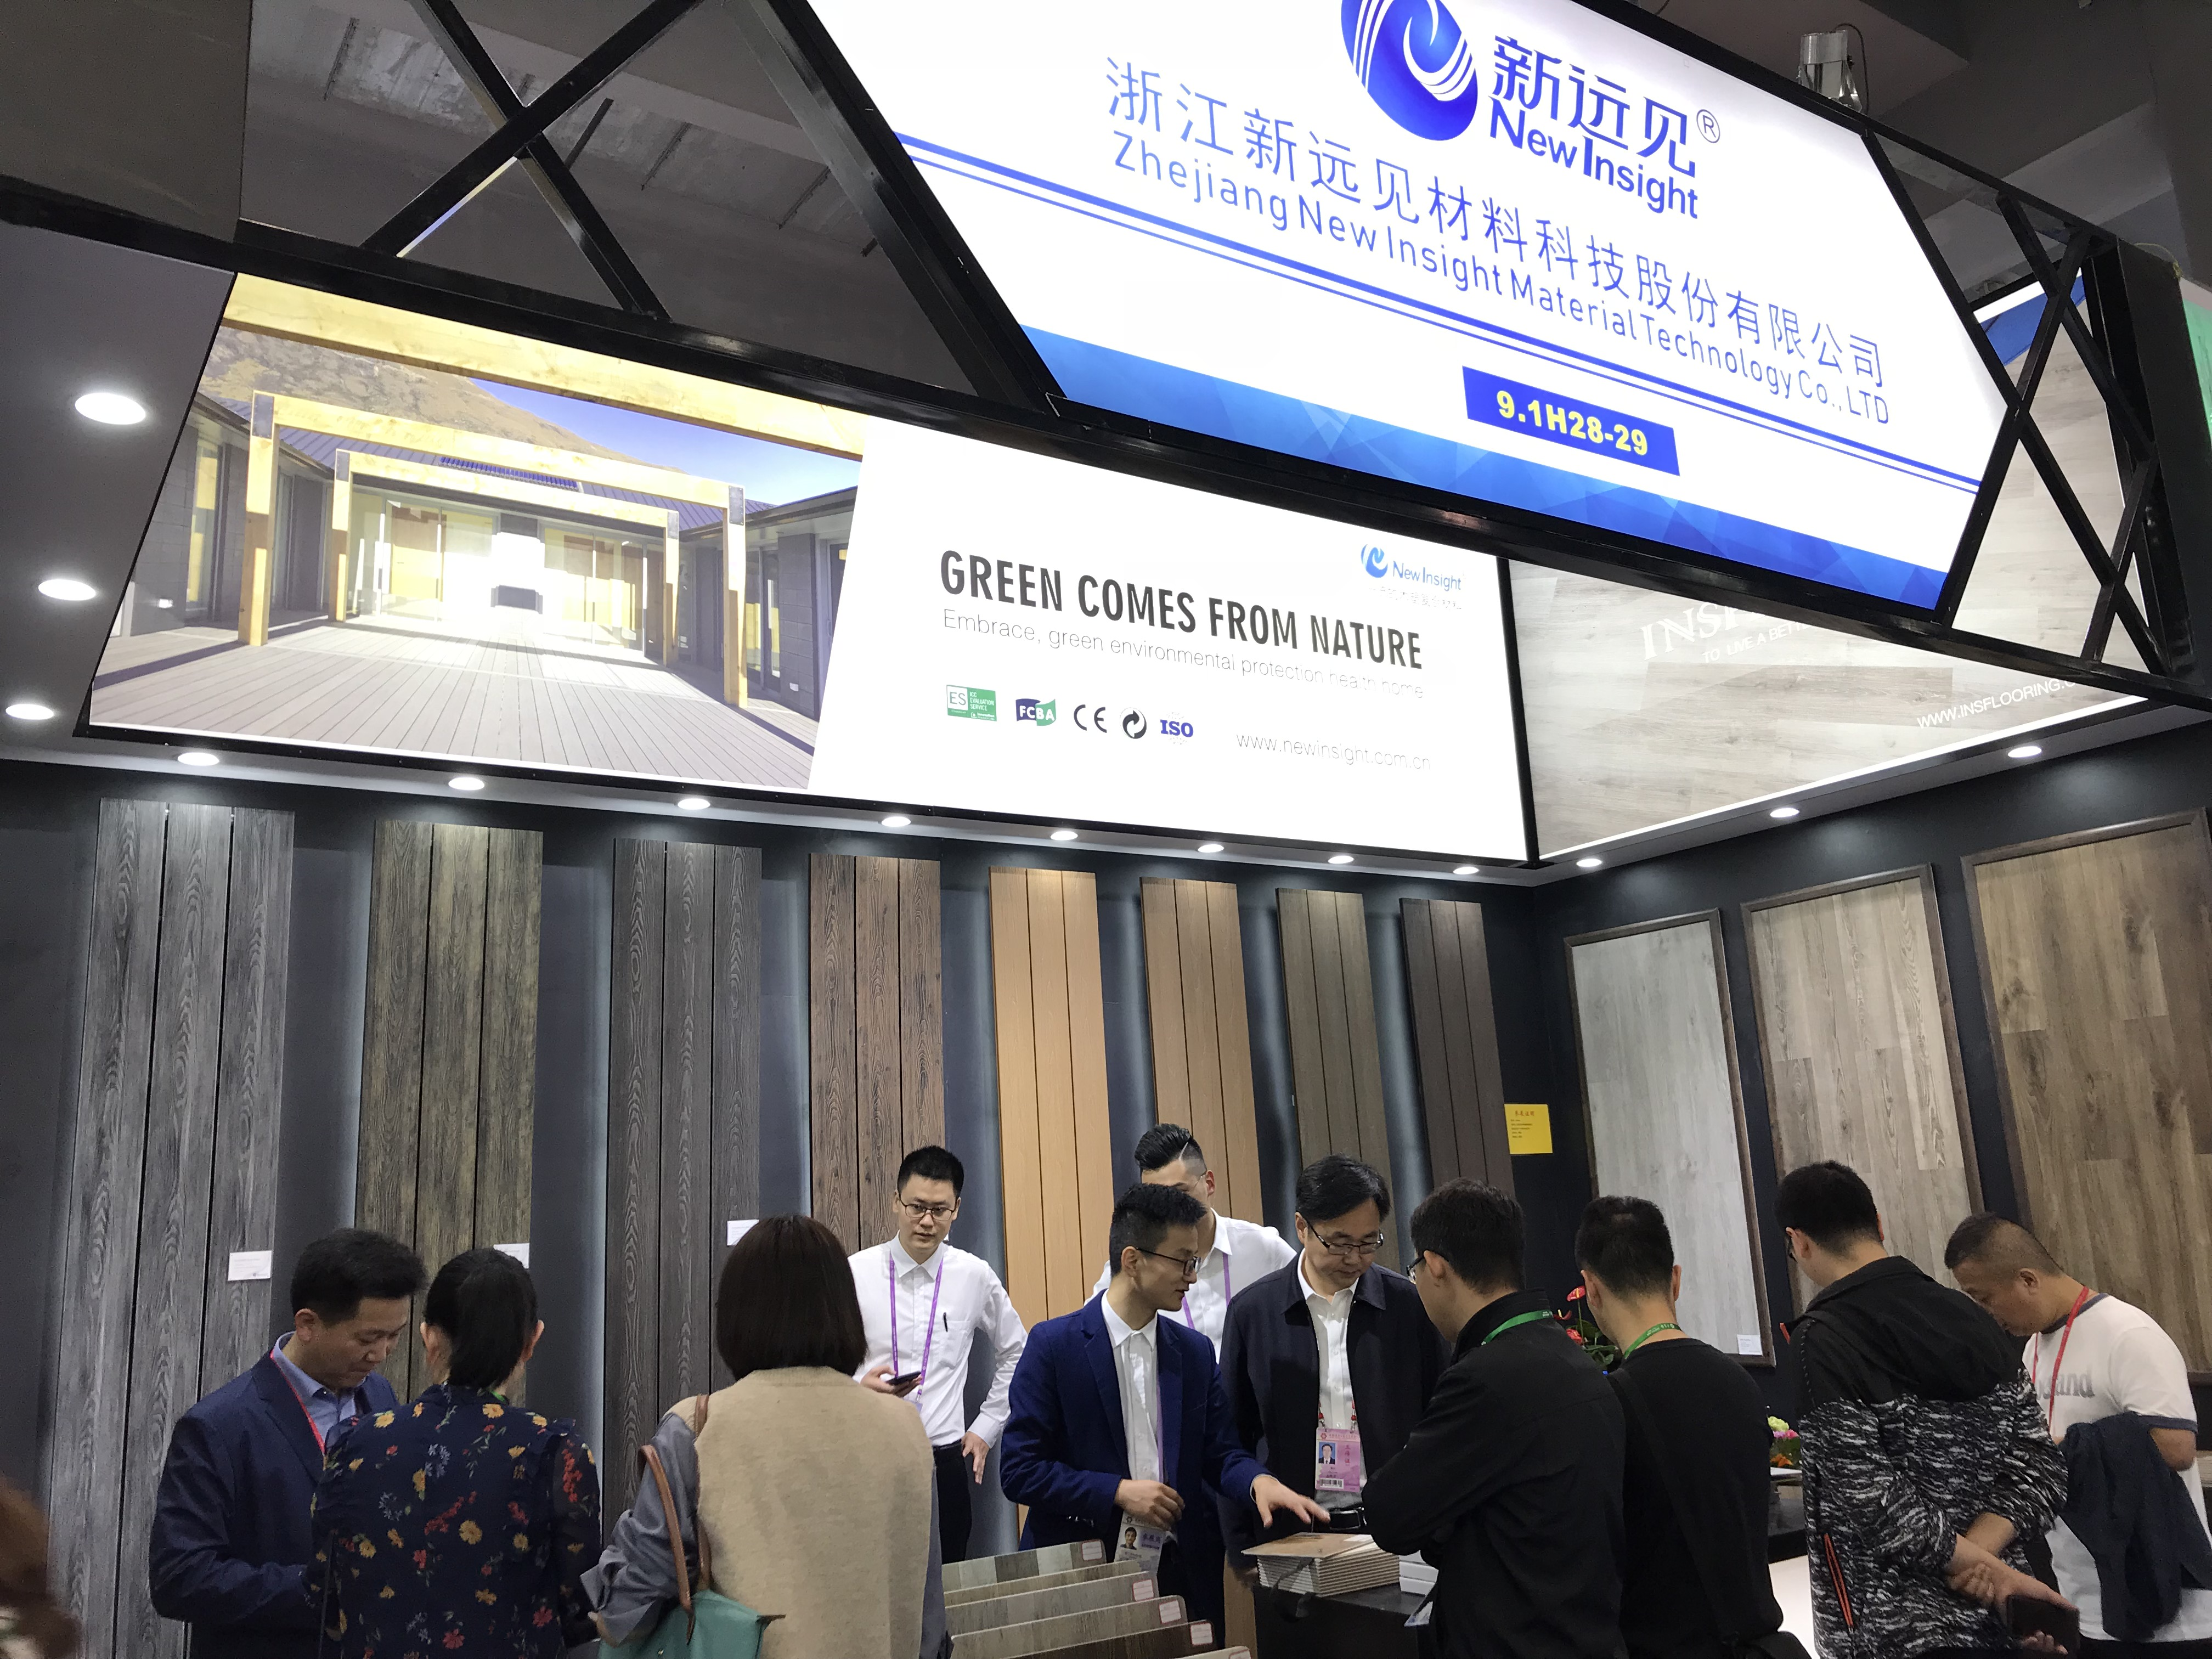 New Insight Attended 125th Guangzhou Canton Fair